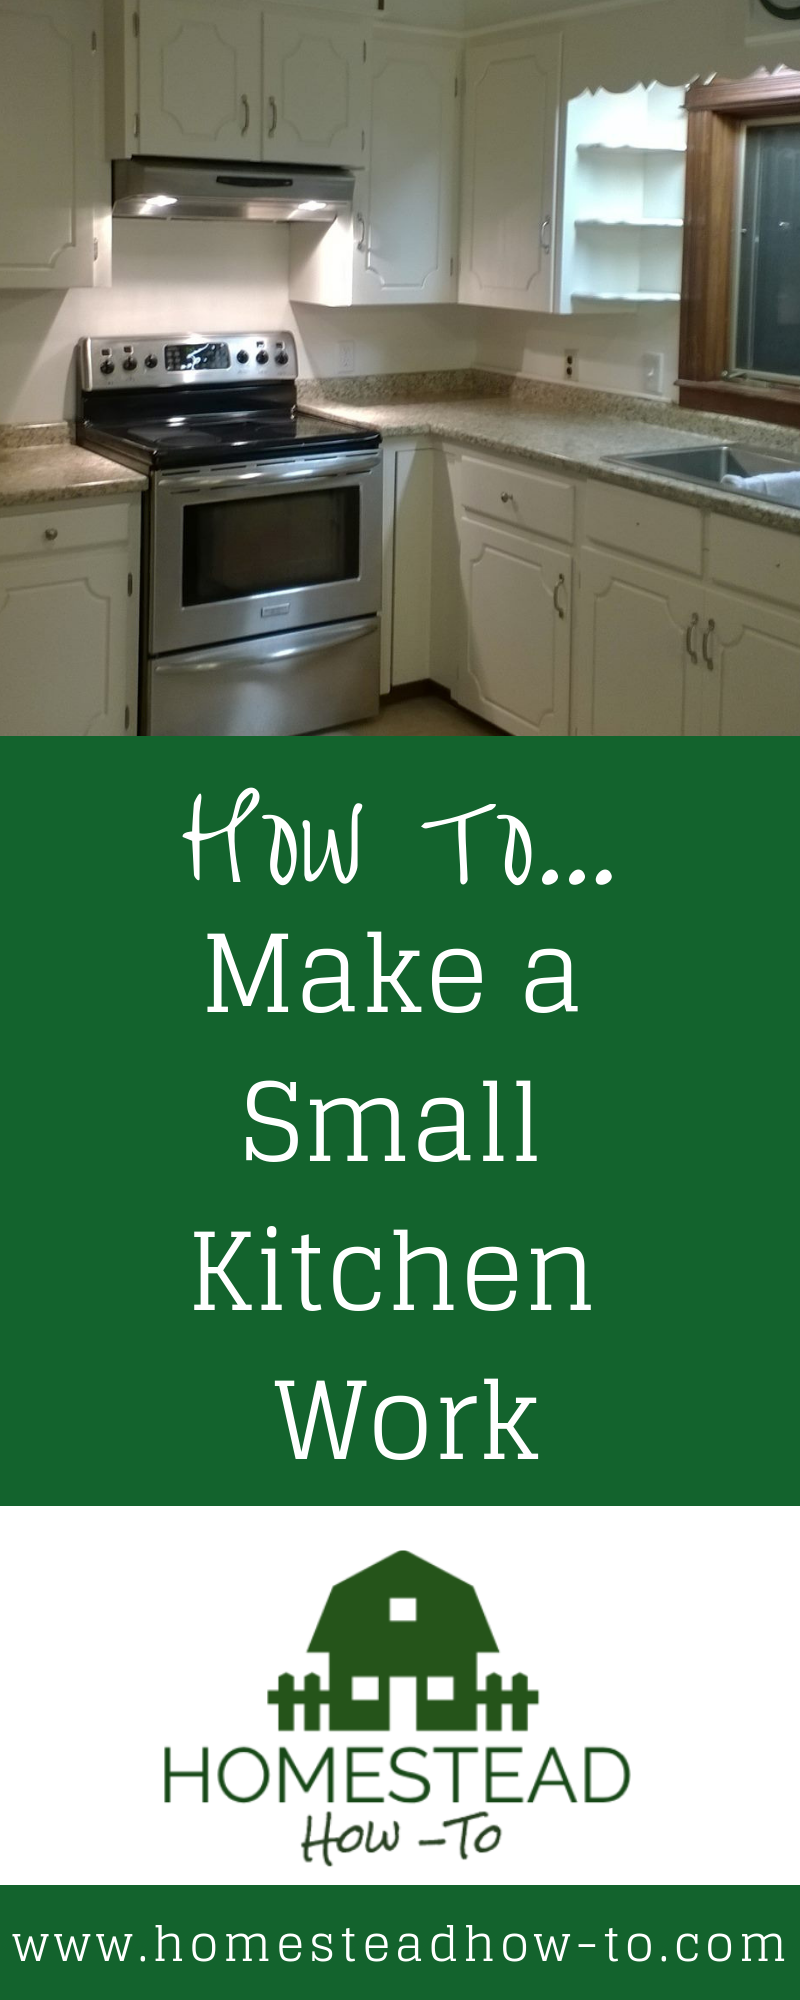 Tips For How To Make The Most Of A Smaller Kitchen Especially When